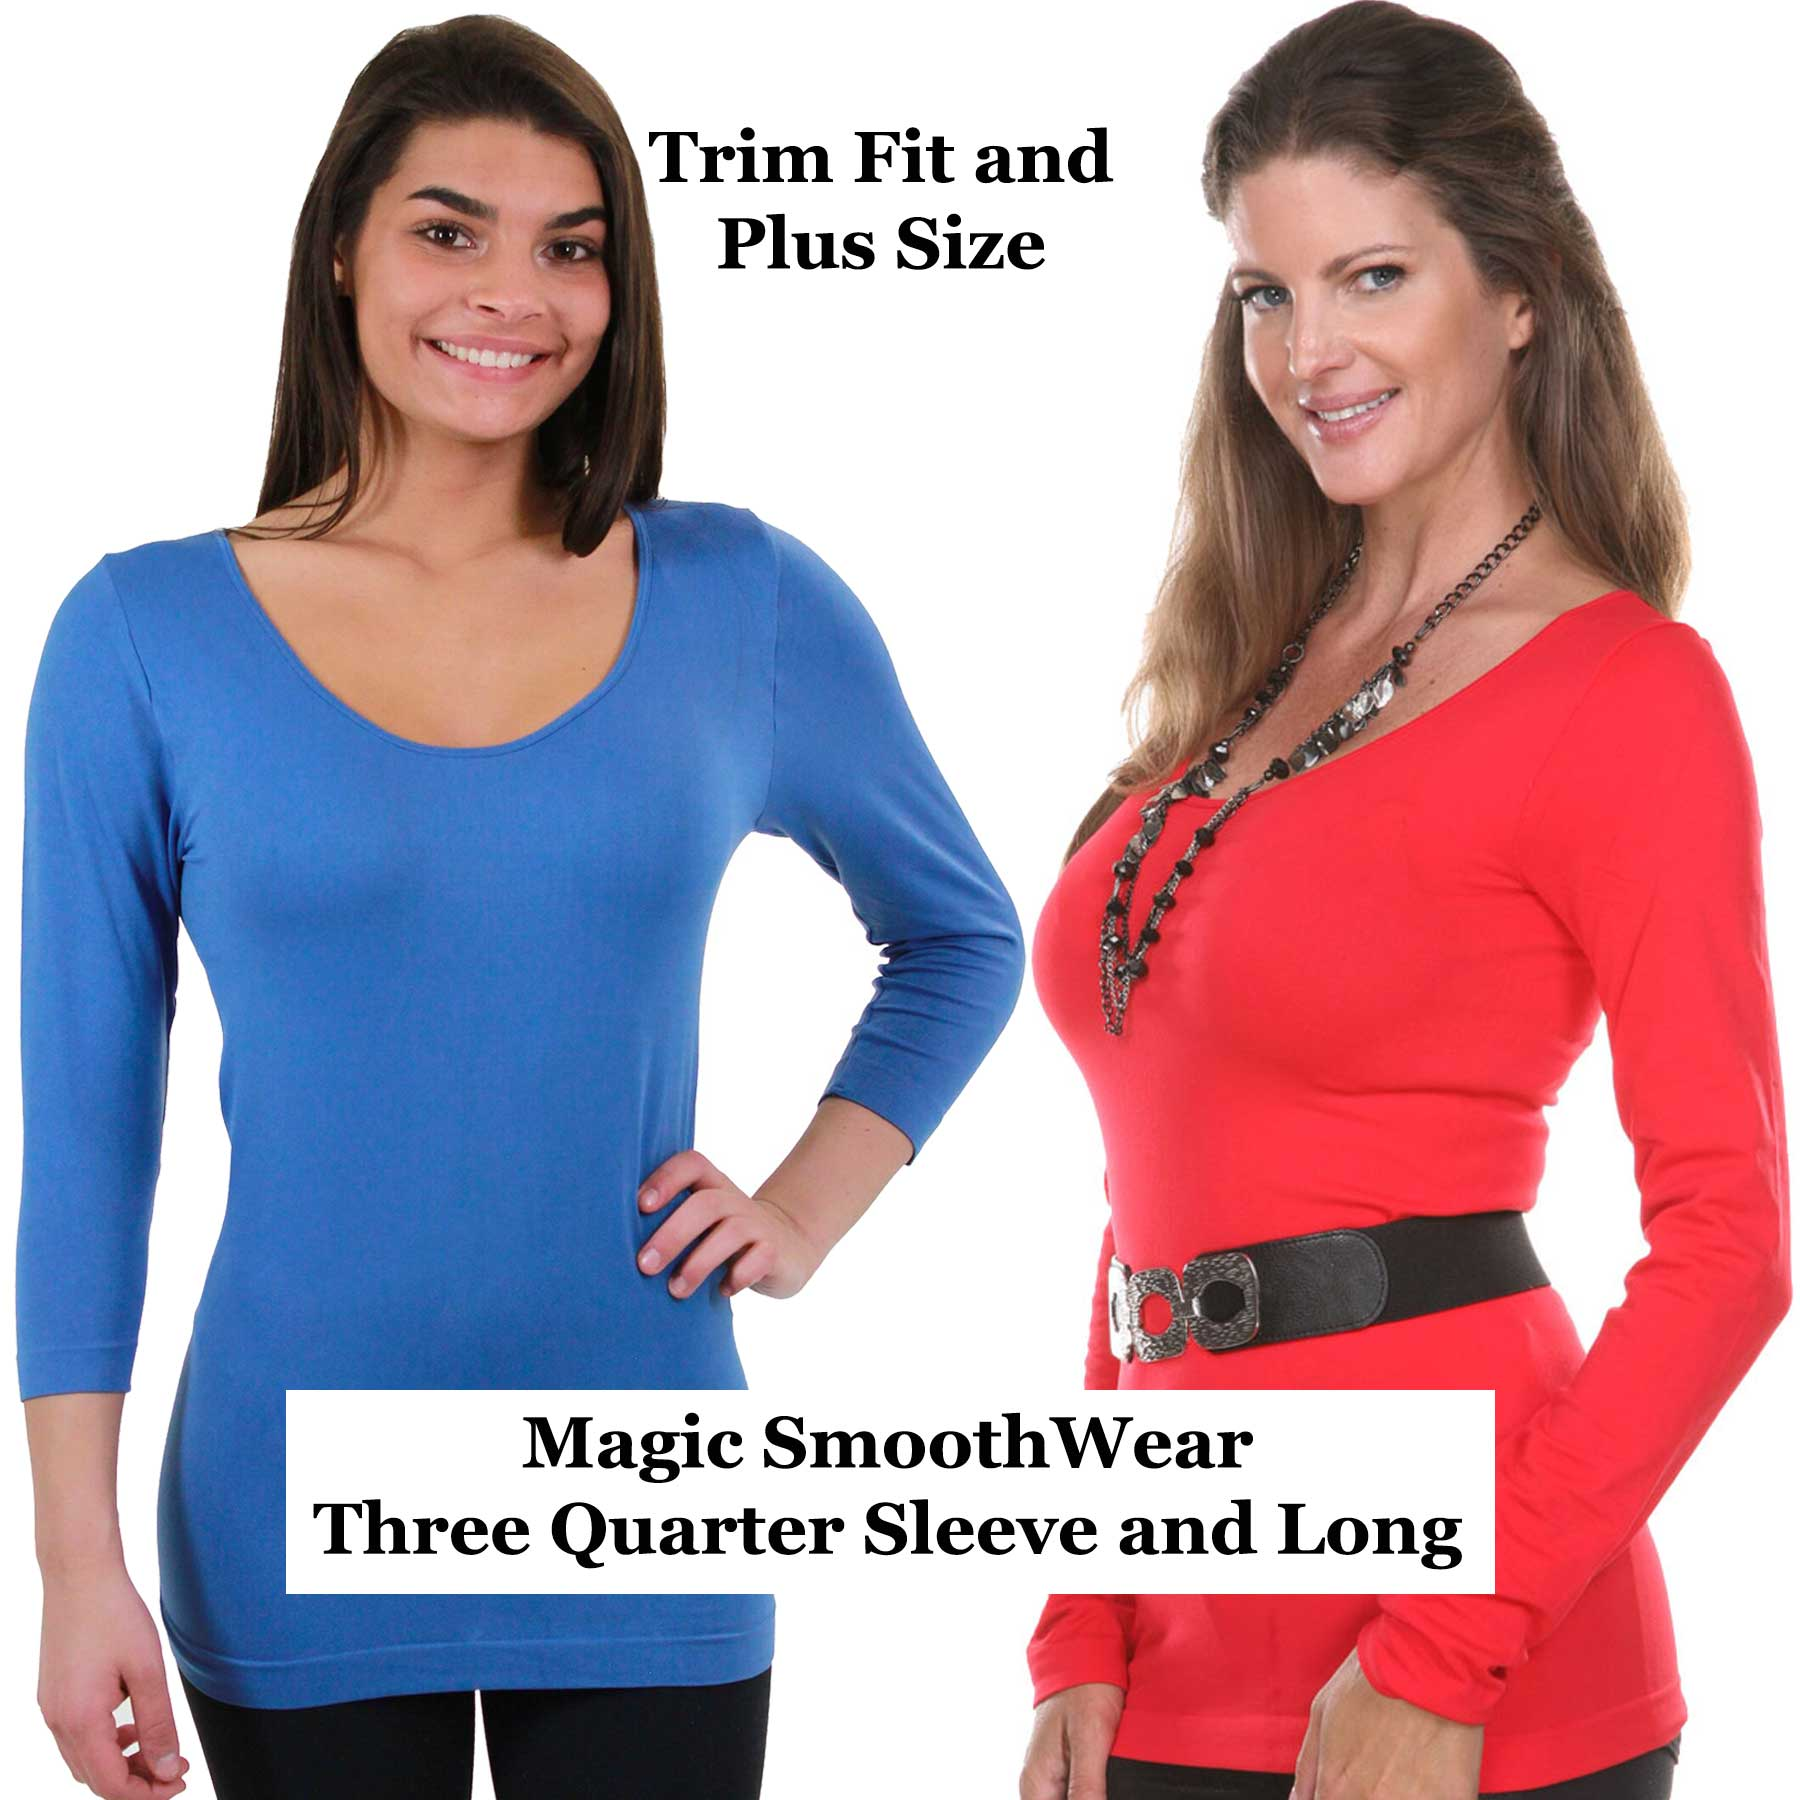 Magic SmoothWear with Sleeves